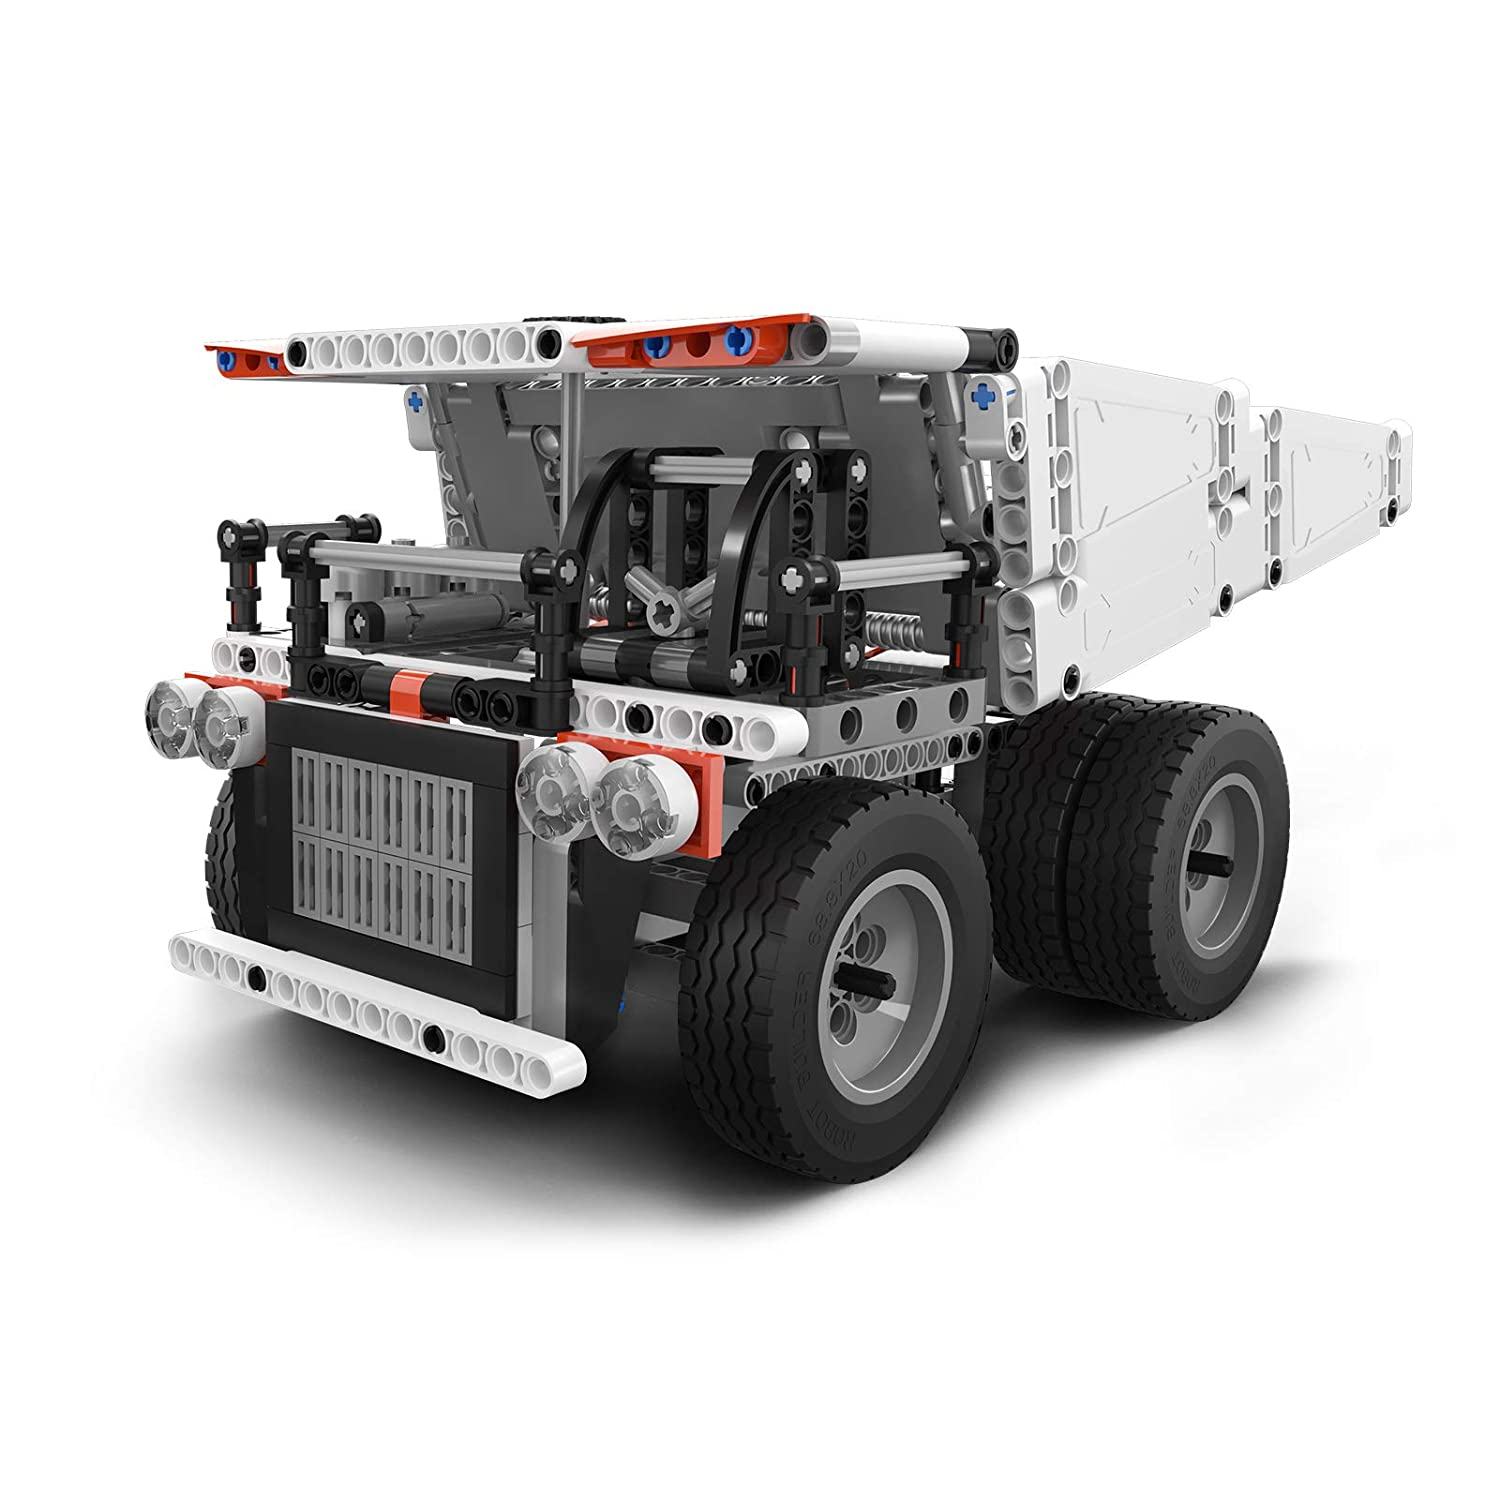 Xiaomi Mi Truck Builder Building Kit Toys for Boys & Girls, 2-in-1 Model (530+Piece)